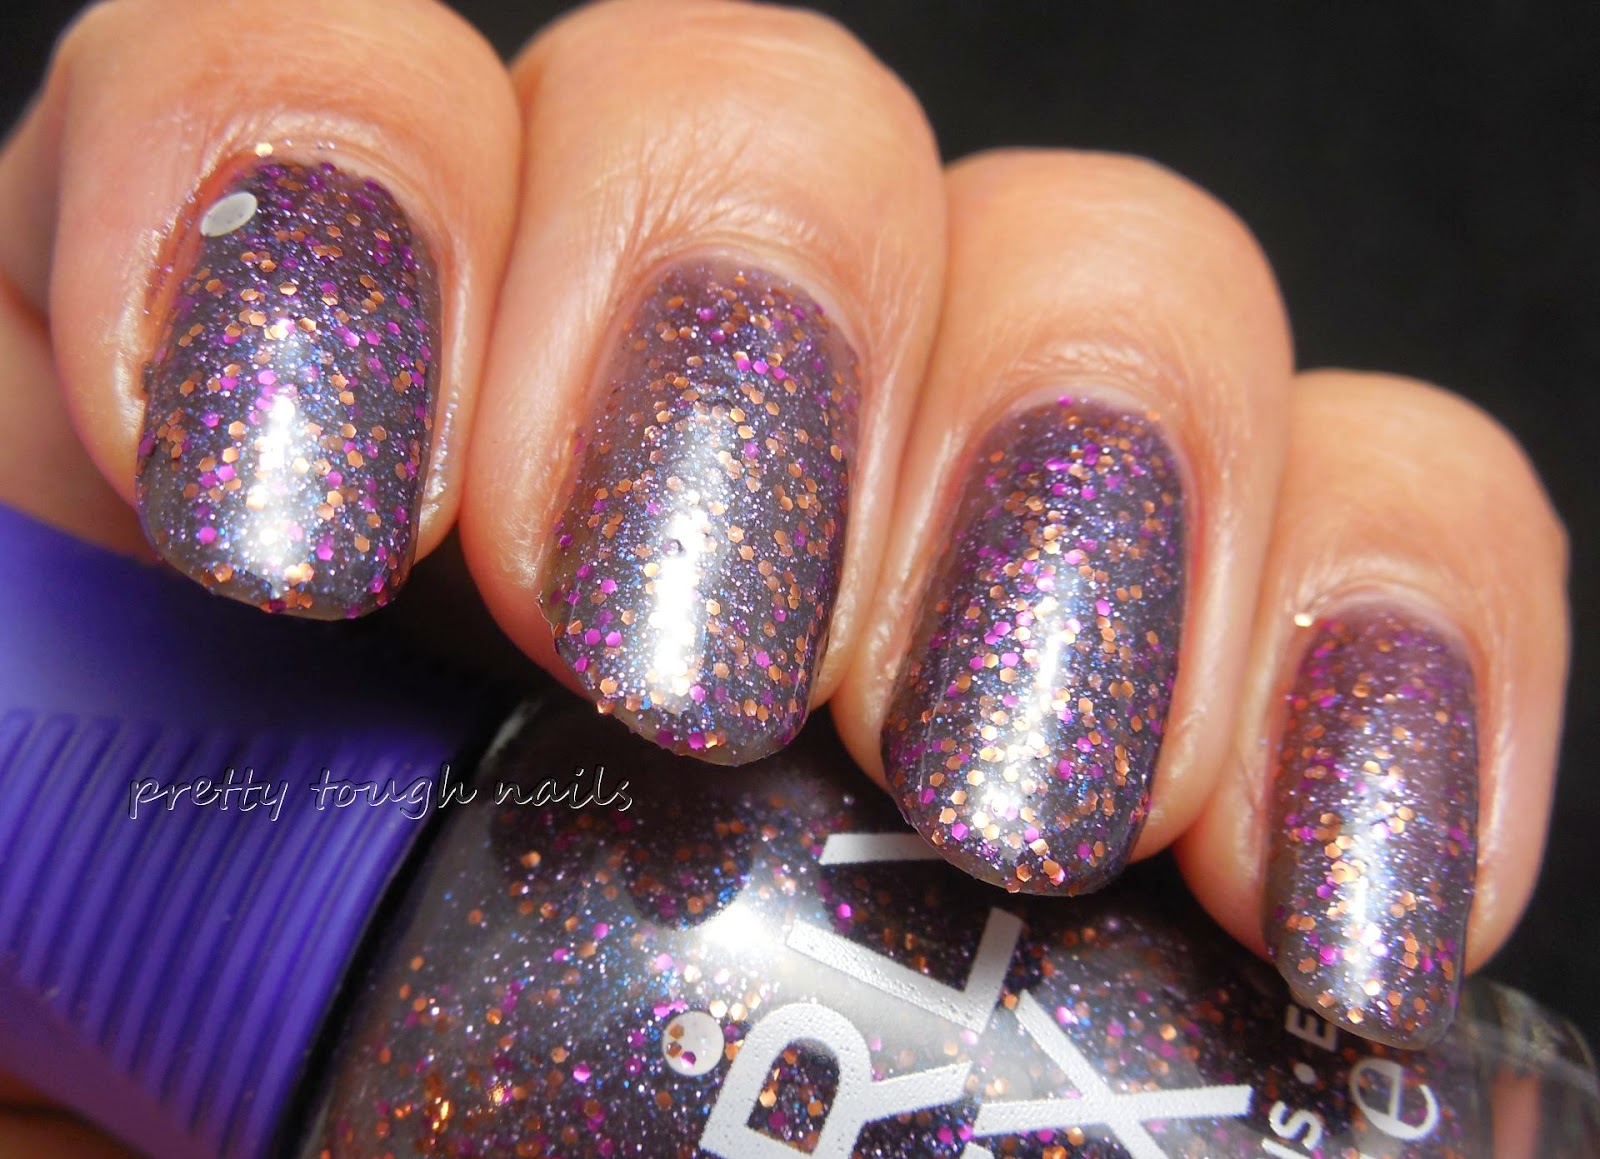 Orly Interglactic Space